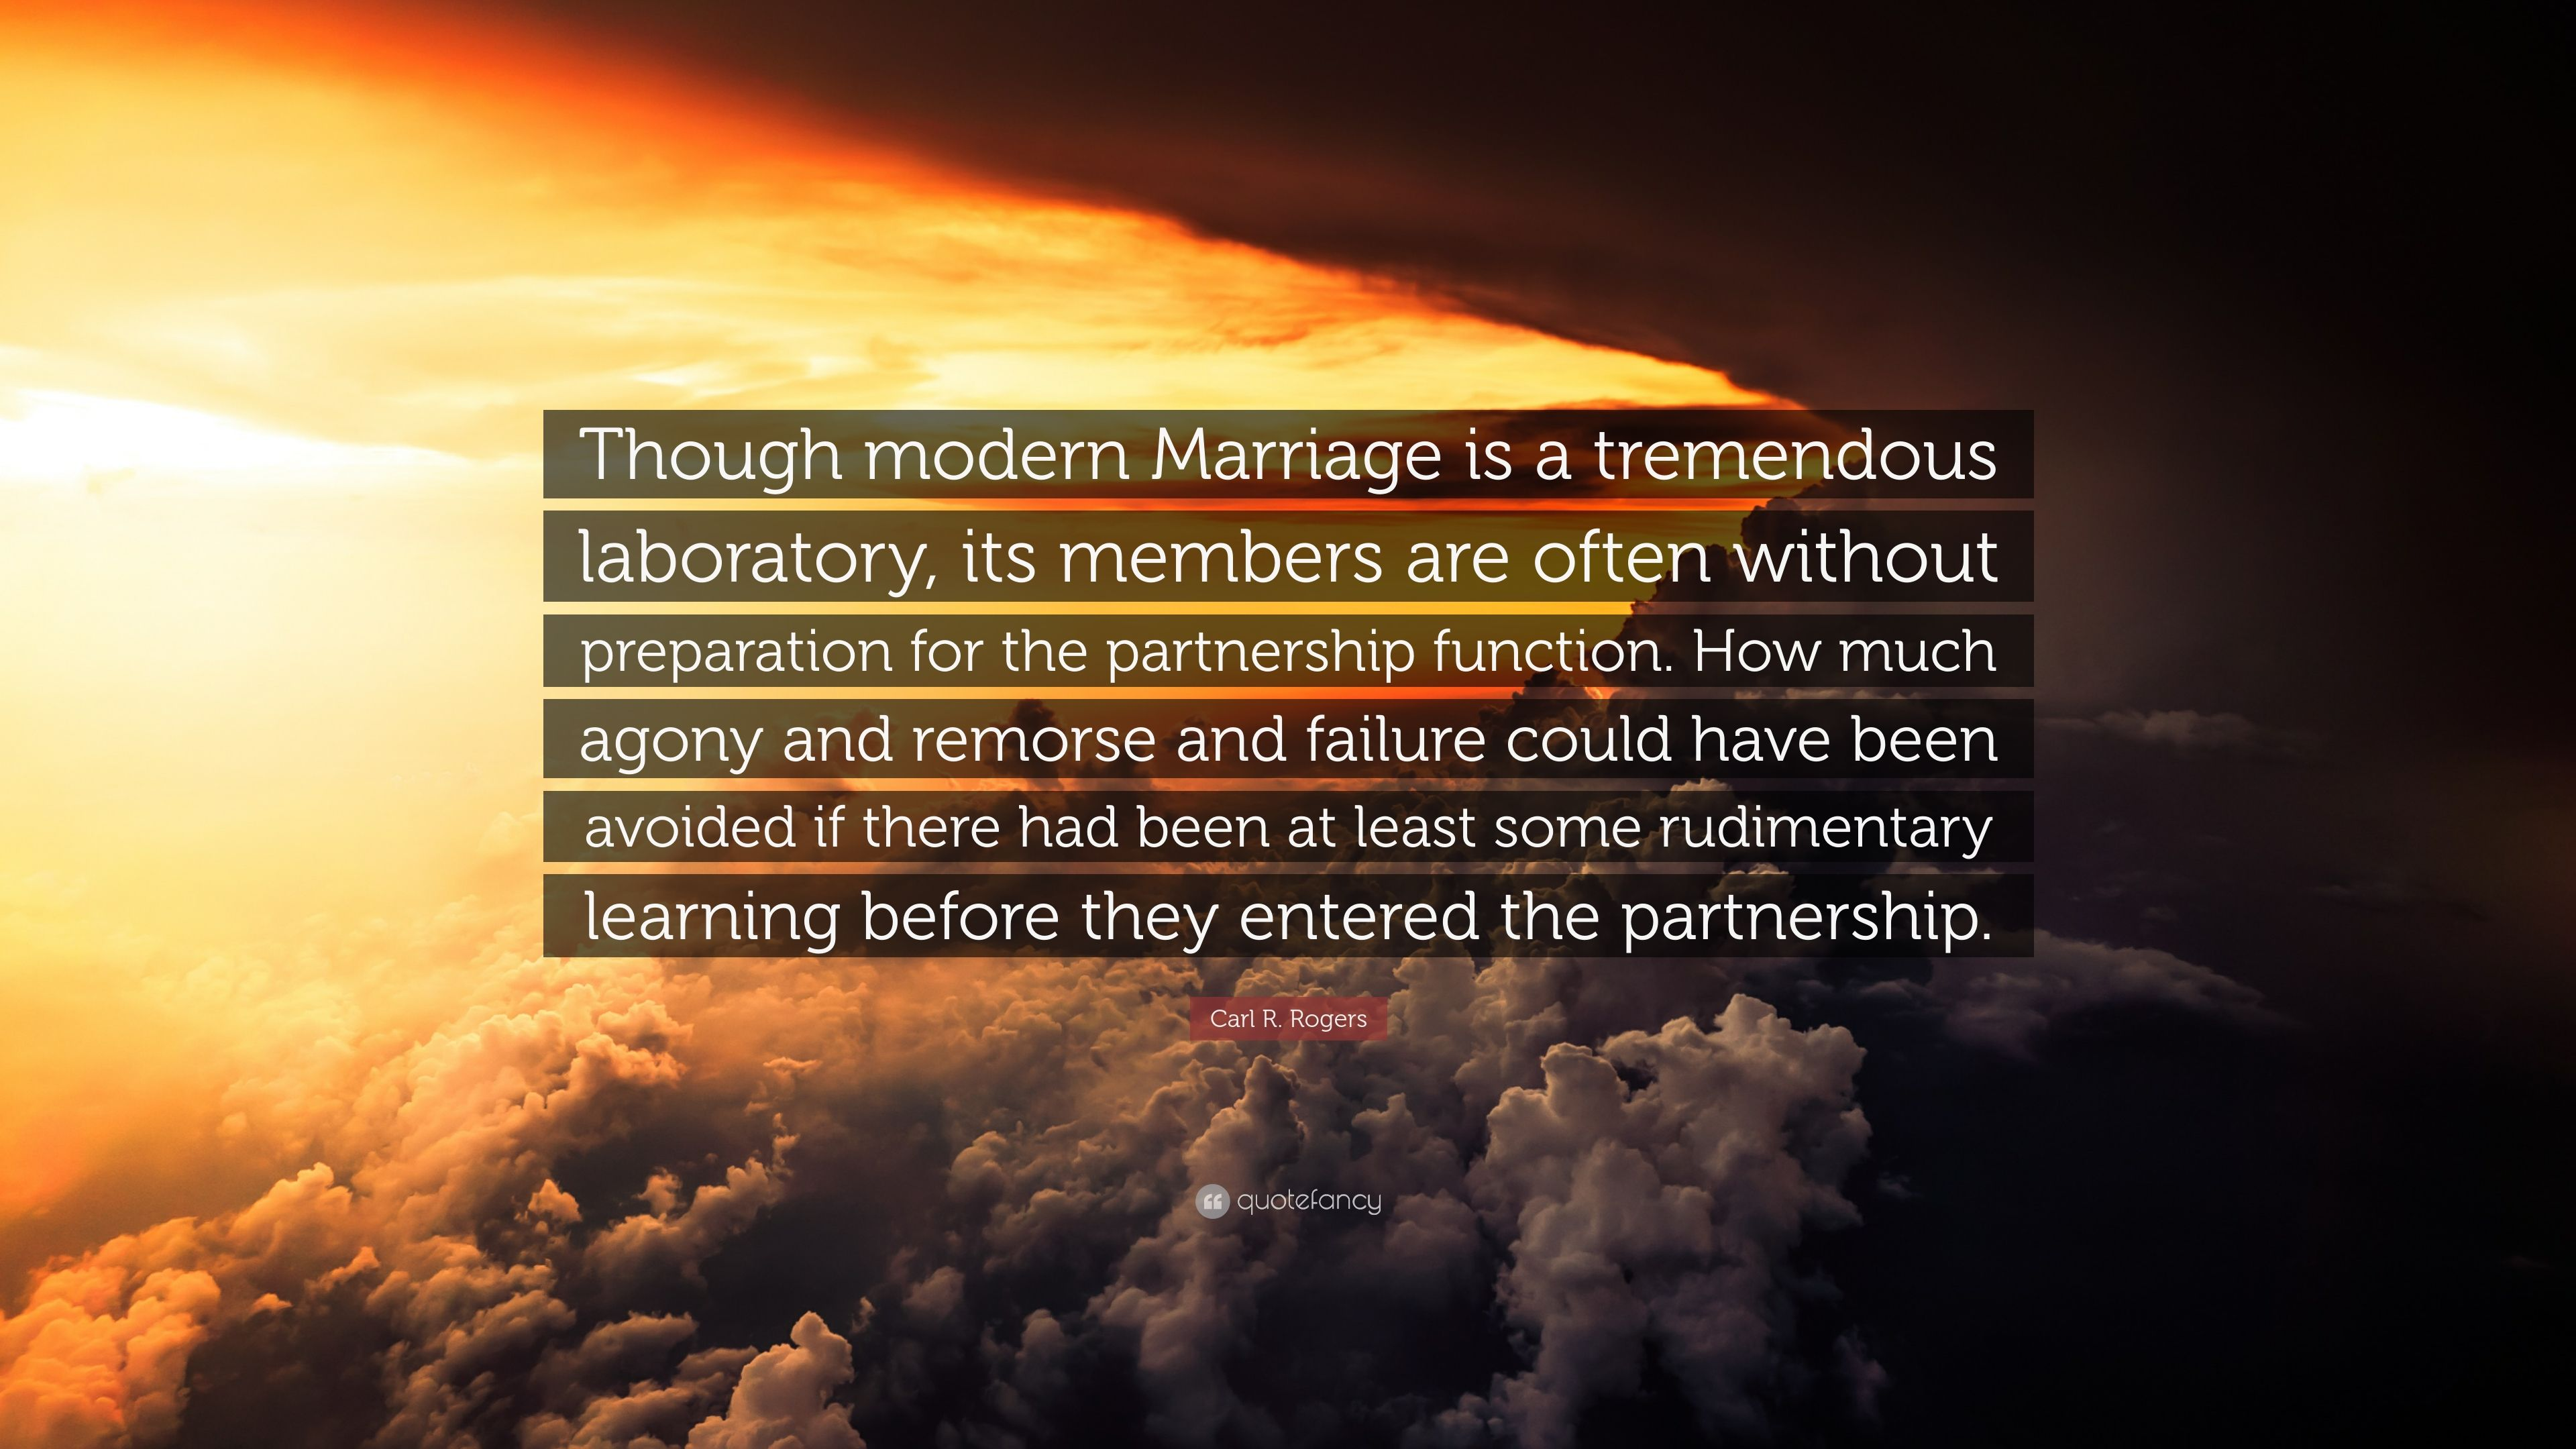 Charming Carl R. Rogers Quote: U201cThough Modern Marriage Is A Tremendous Laboratory,  Its